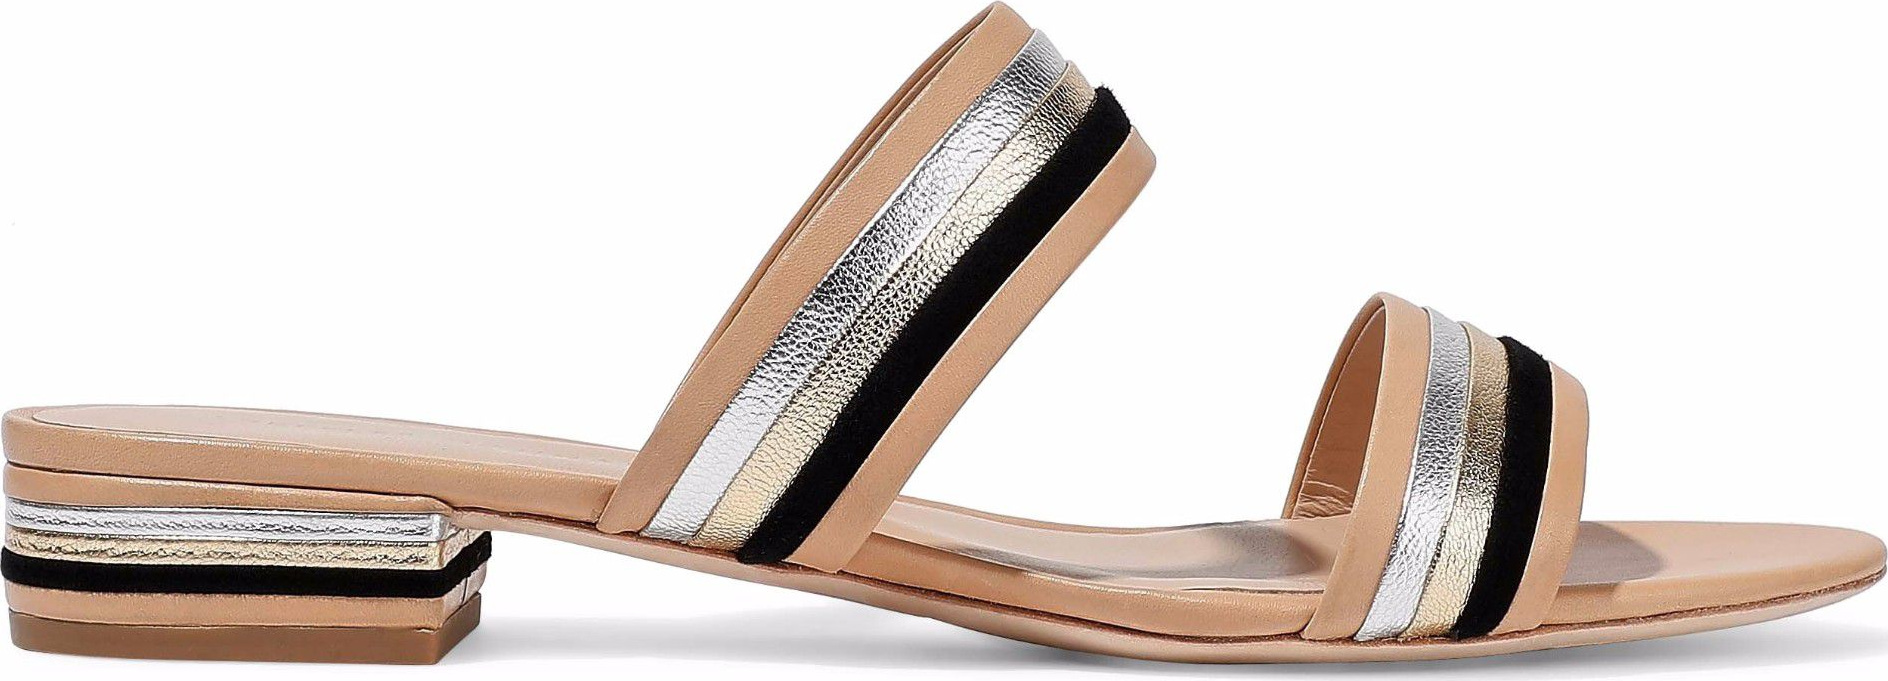 a0ead7d389b Loeffler Randall Rubie suede-trimmed matte and metallic leather sandals